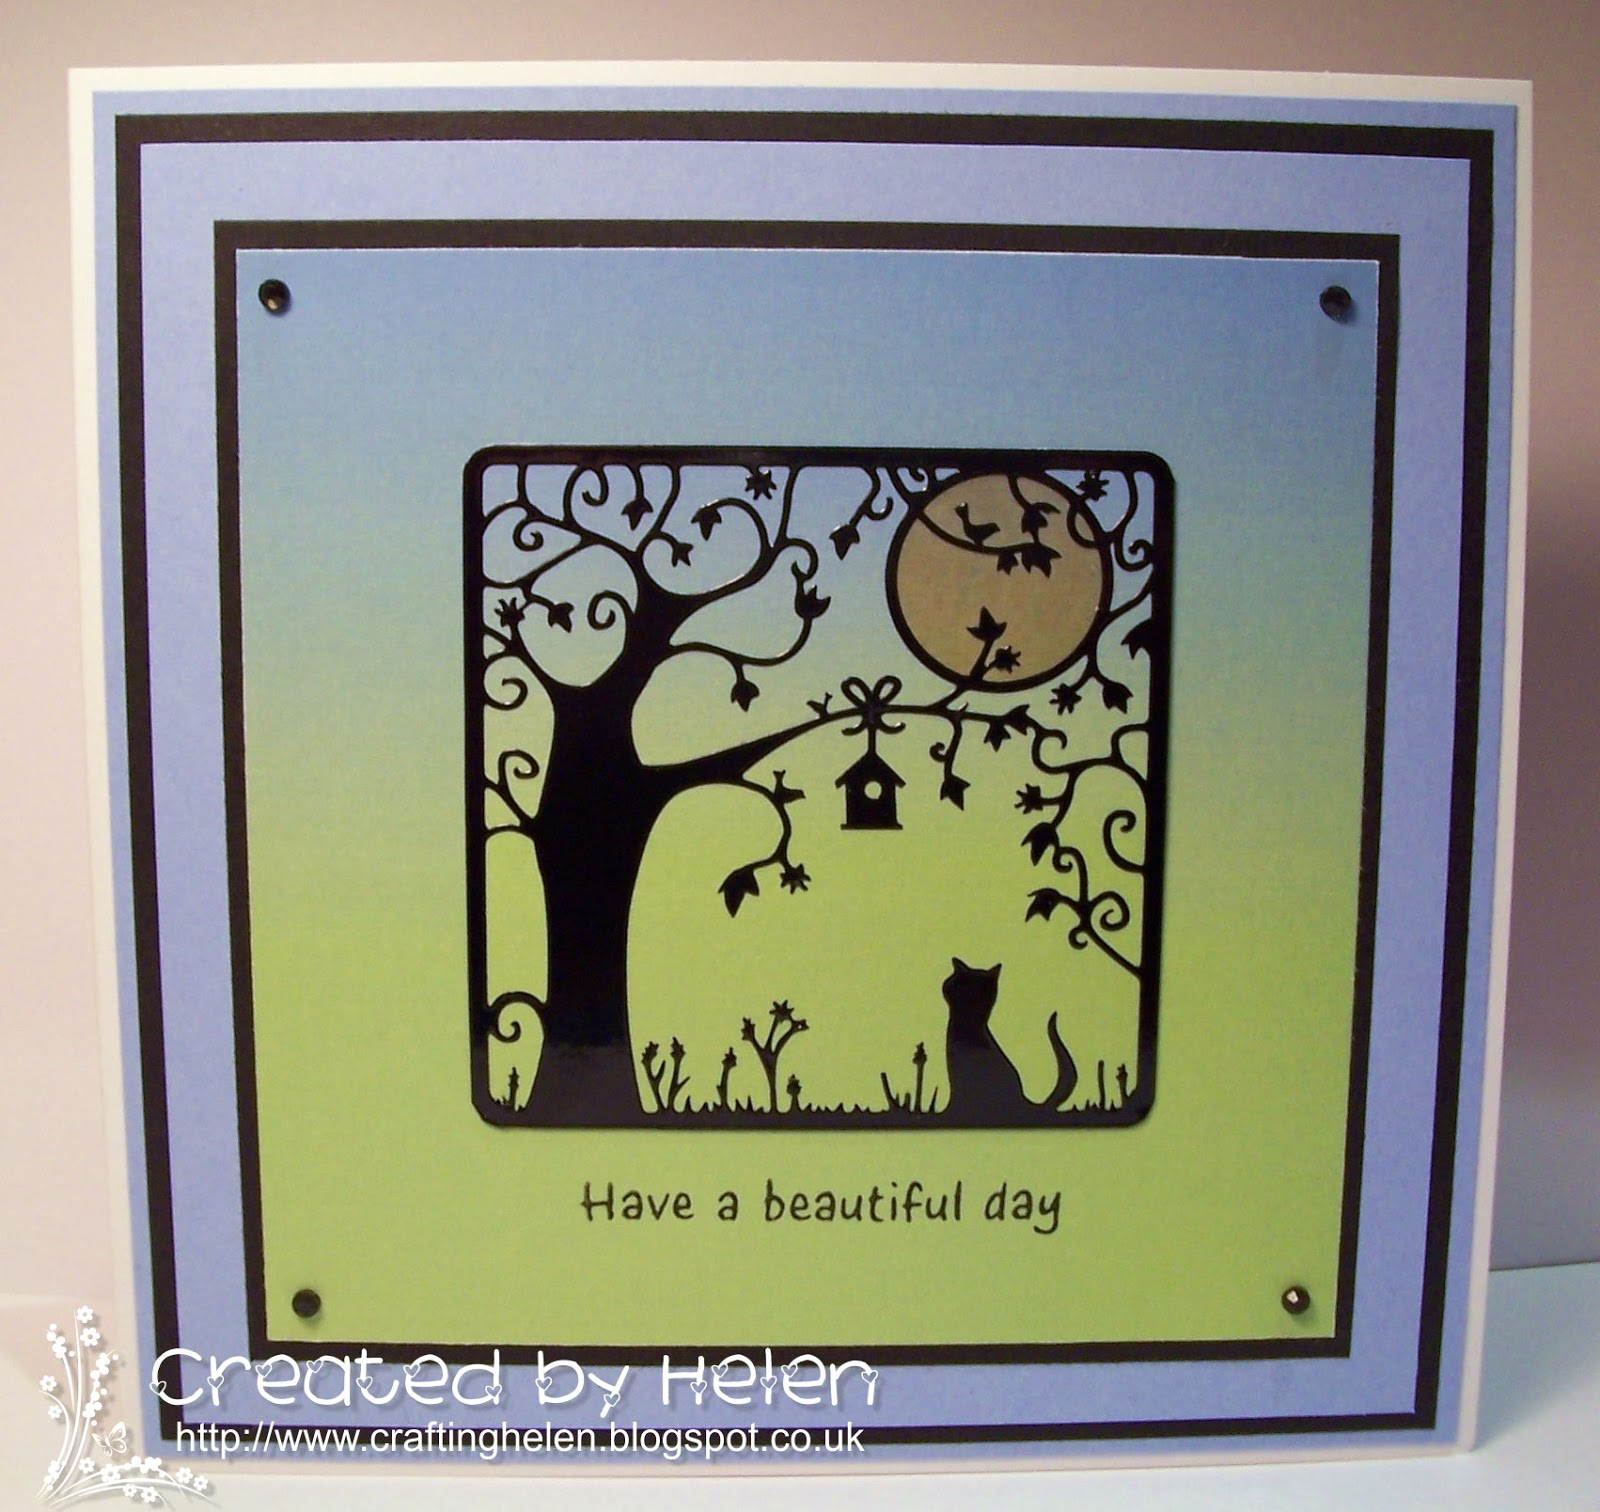 Little claires designs blog project silhouette outline sticker good morning everyone its helen n here with this weeks friday blog project and im going to show you how to make a simple scene card using one of the new jeuxipadfo Image collections